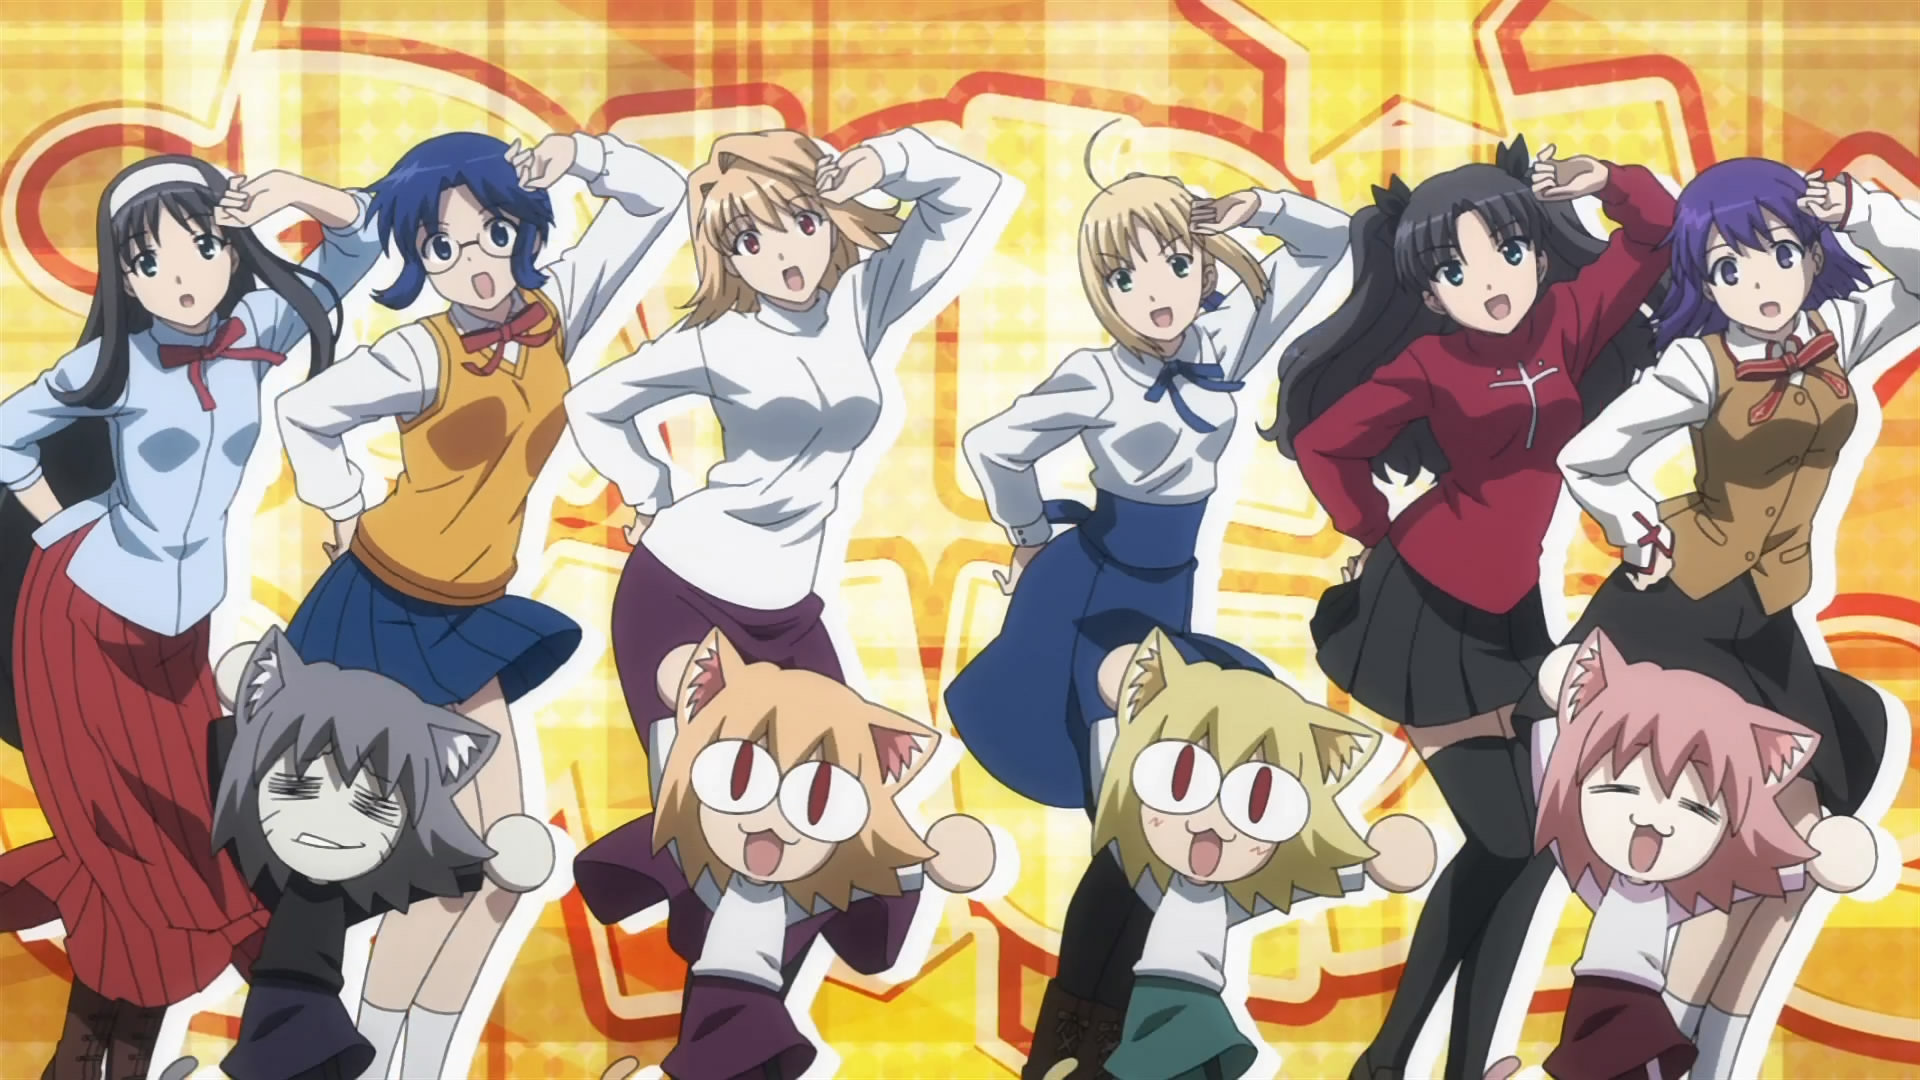 Anime Crossovers like Carnival Phantasm are more prevalent than you think!